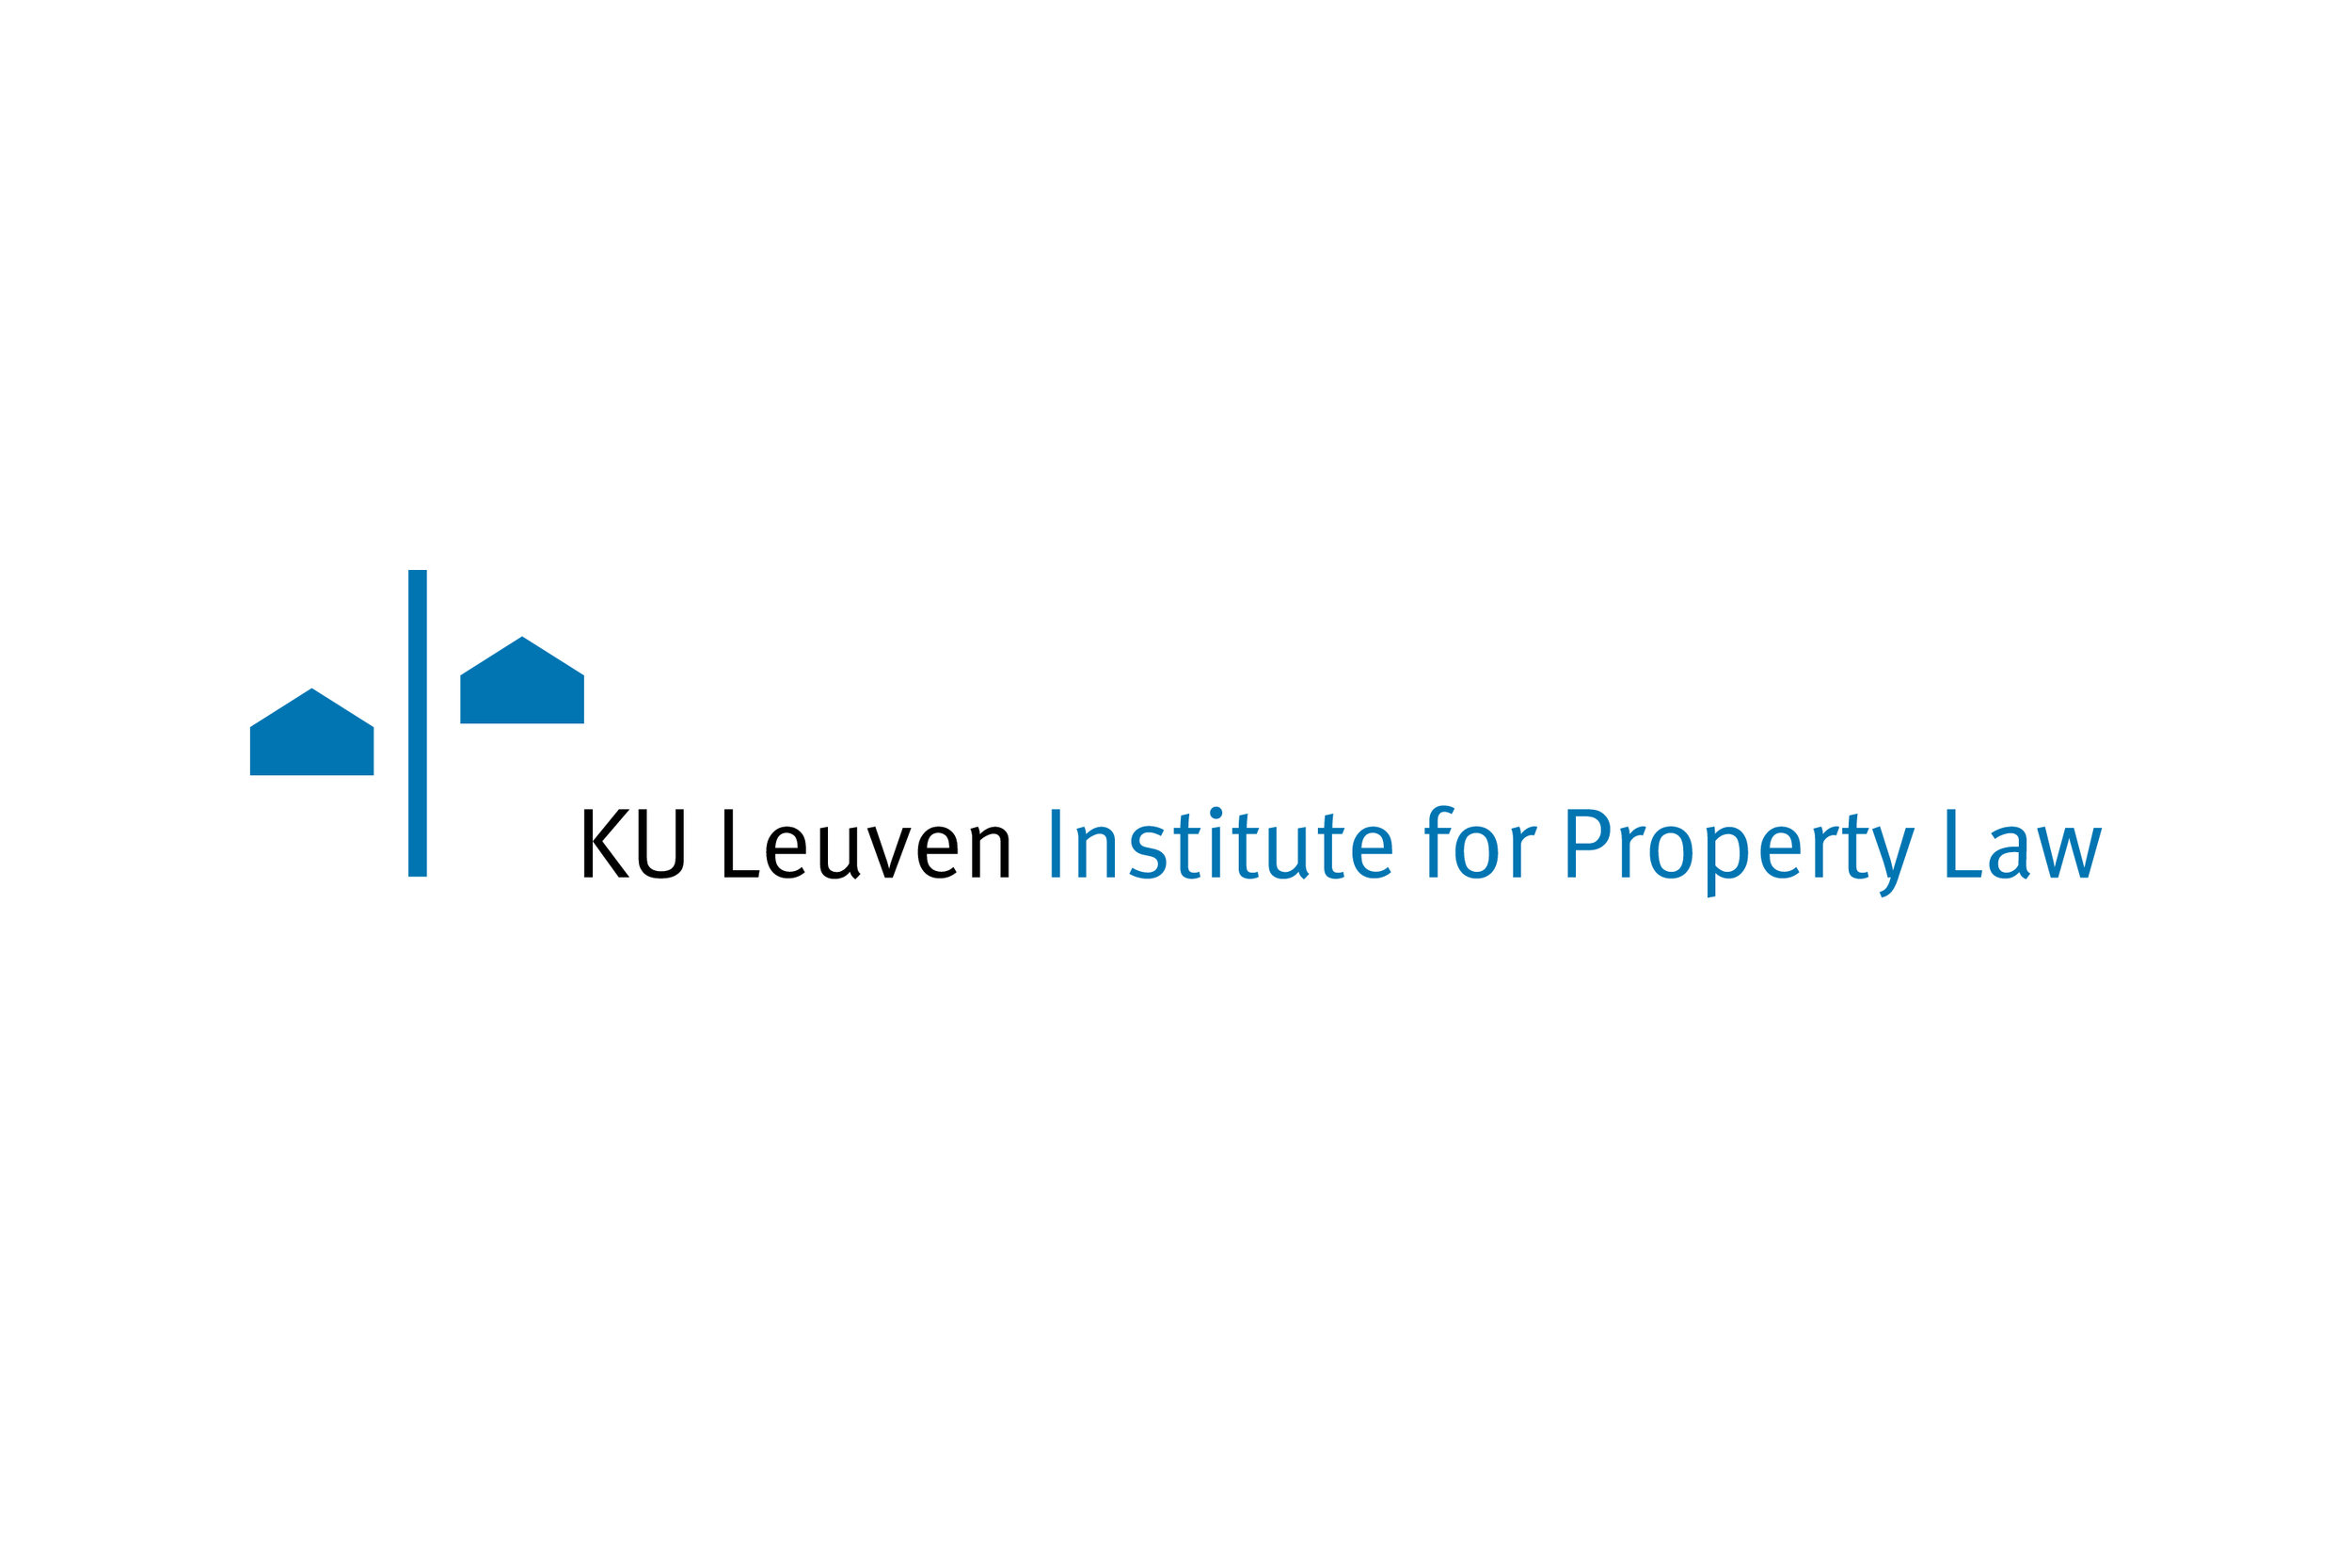 KU Leuven Institute for Property Law